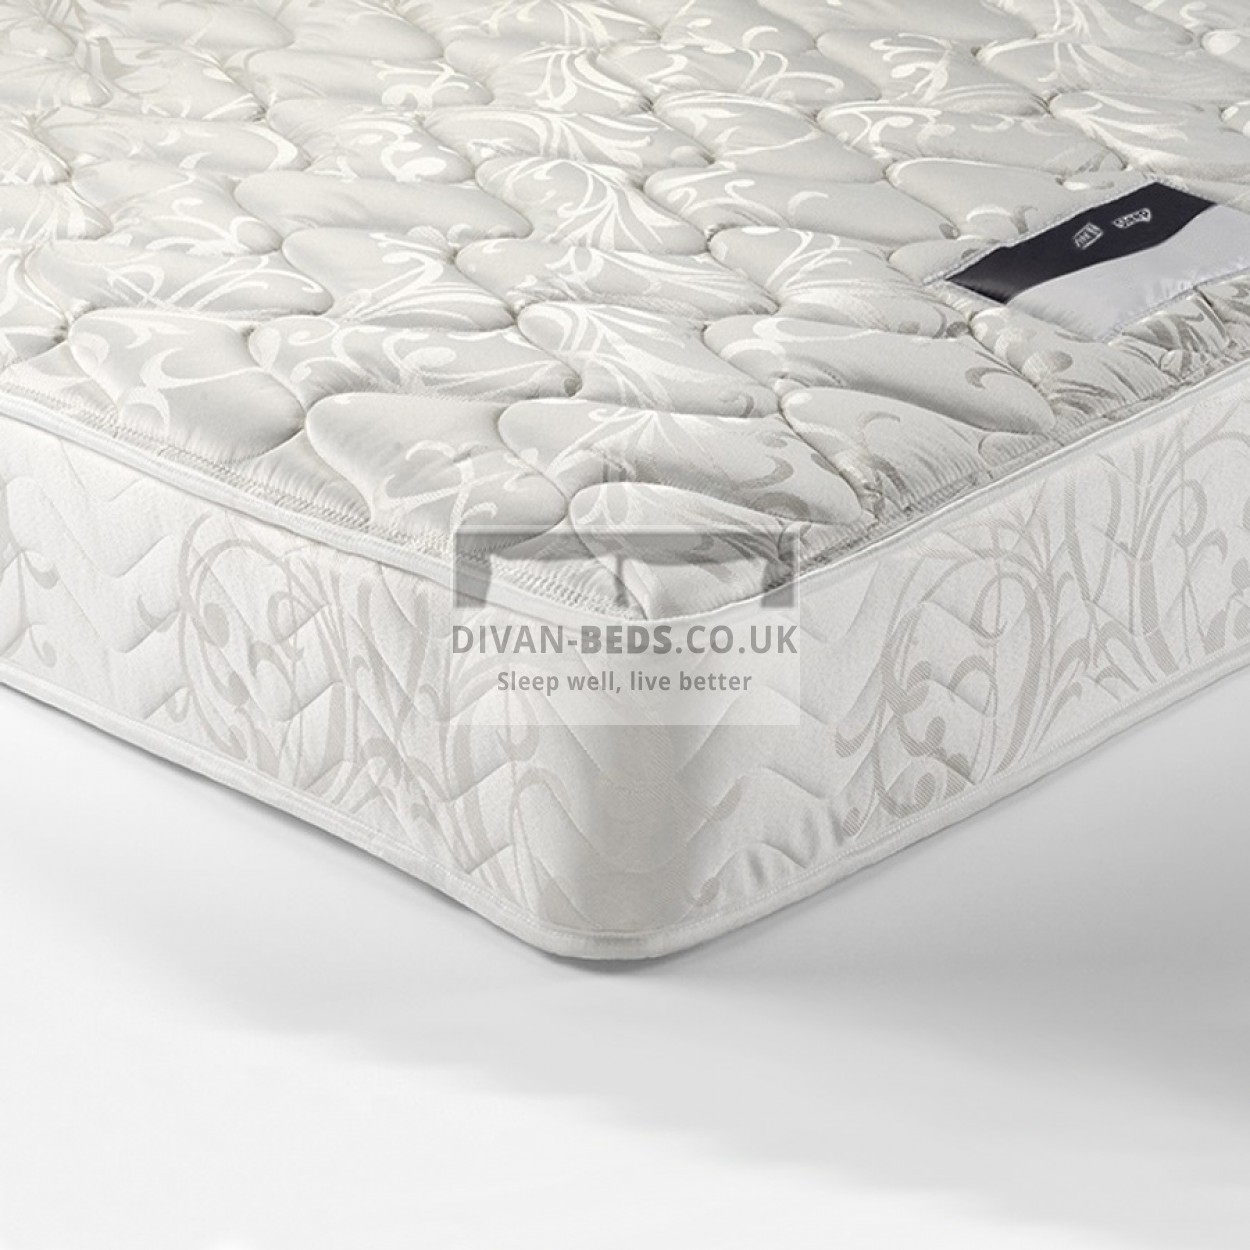 Sleep Easy Spring Memory Foam Mattress Guaranteed